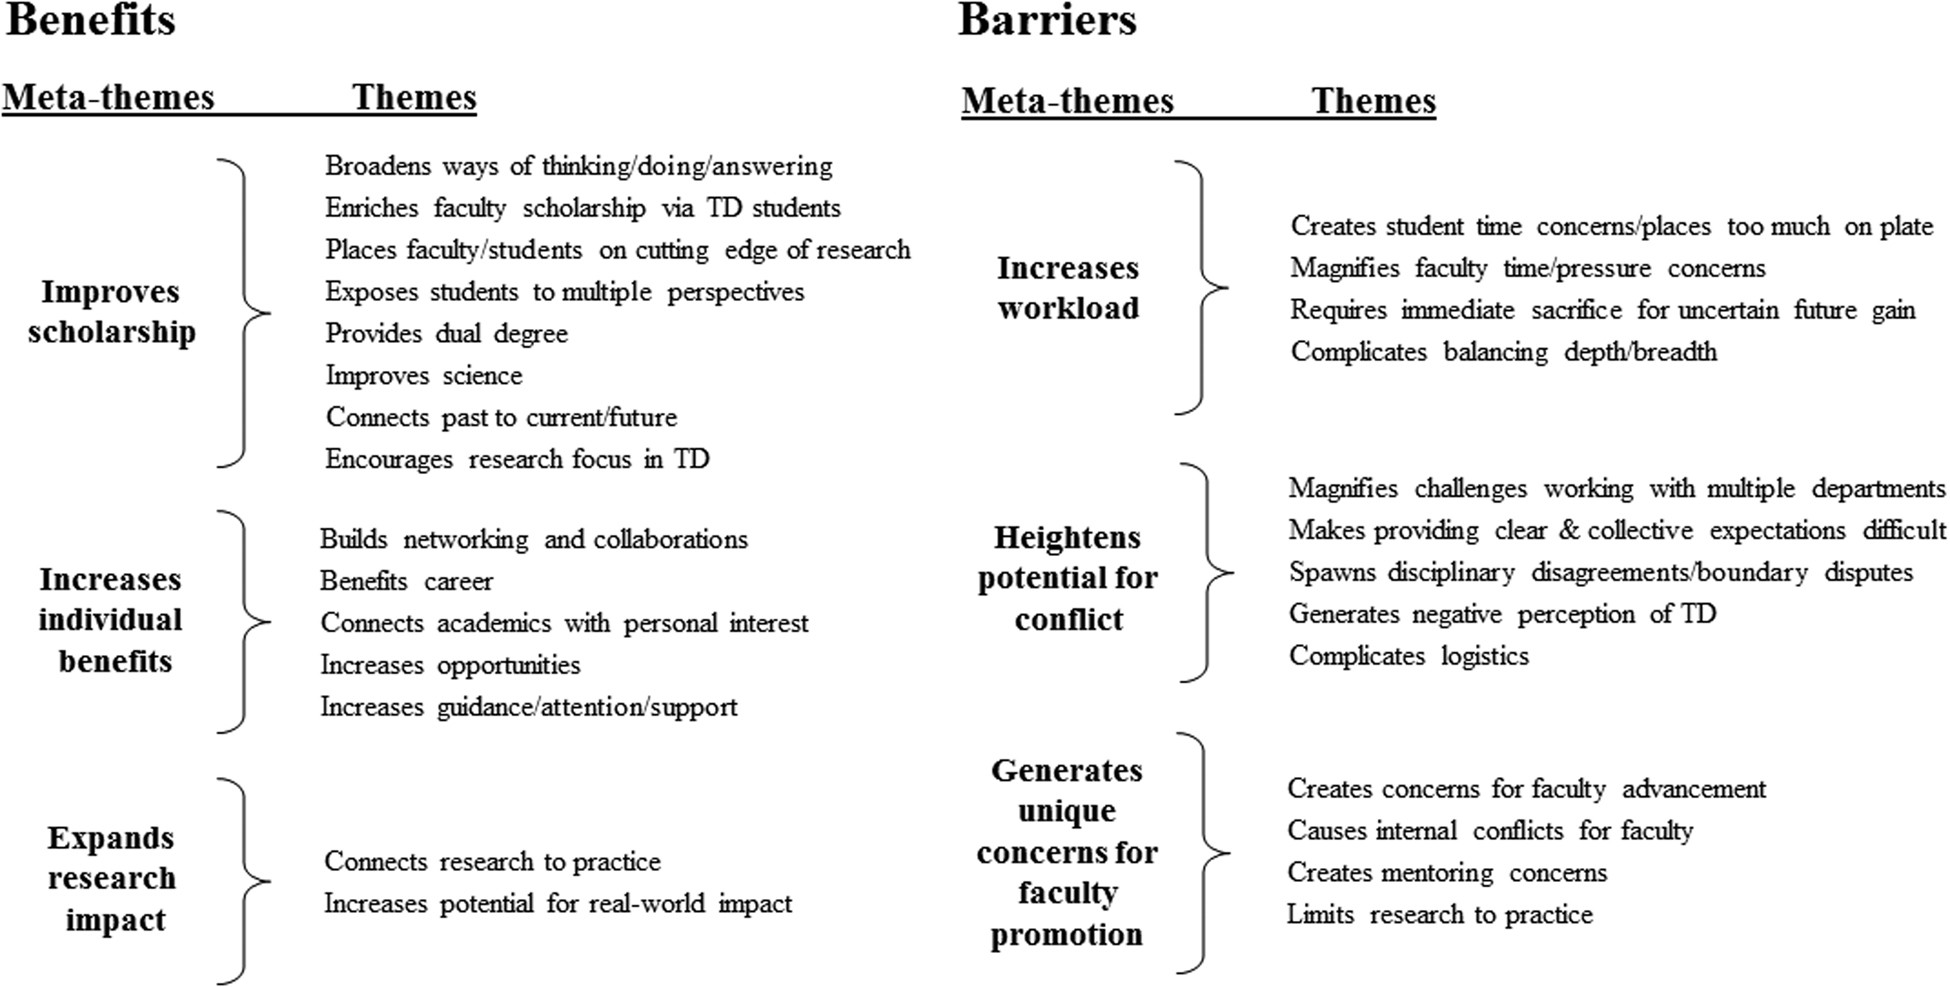 Longitudinal perspectives of faculty and students on benefits and